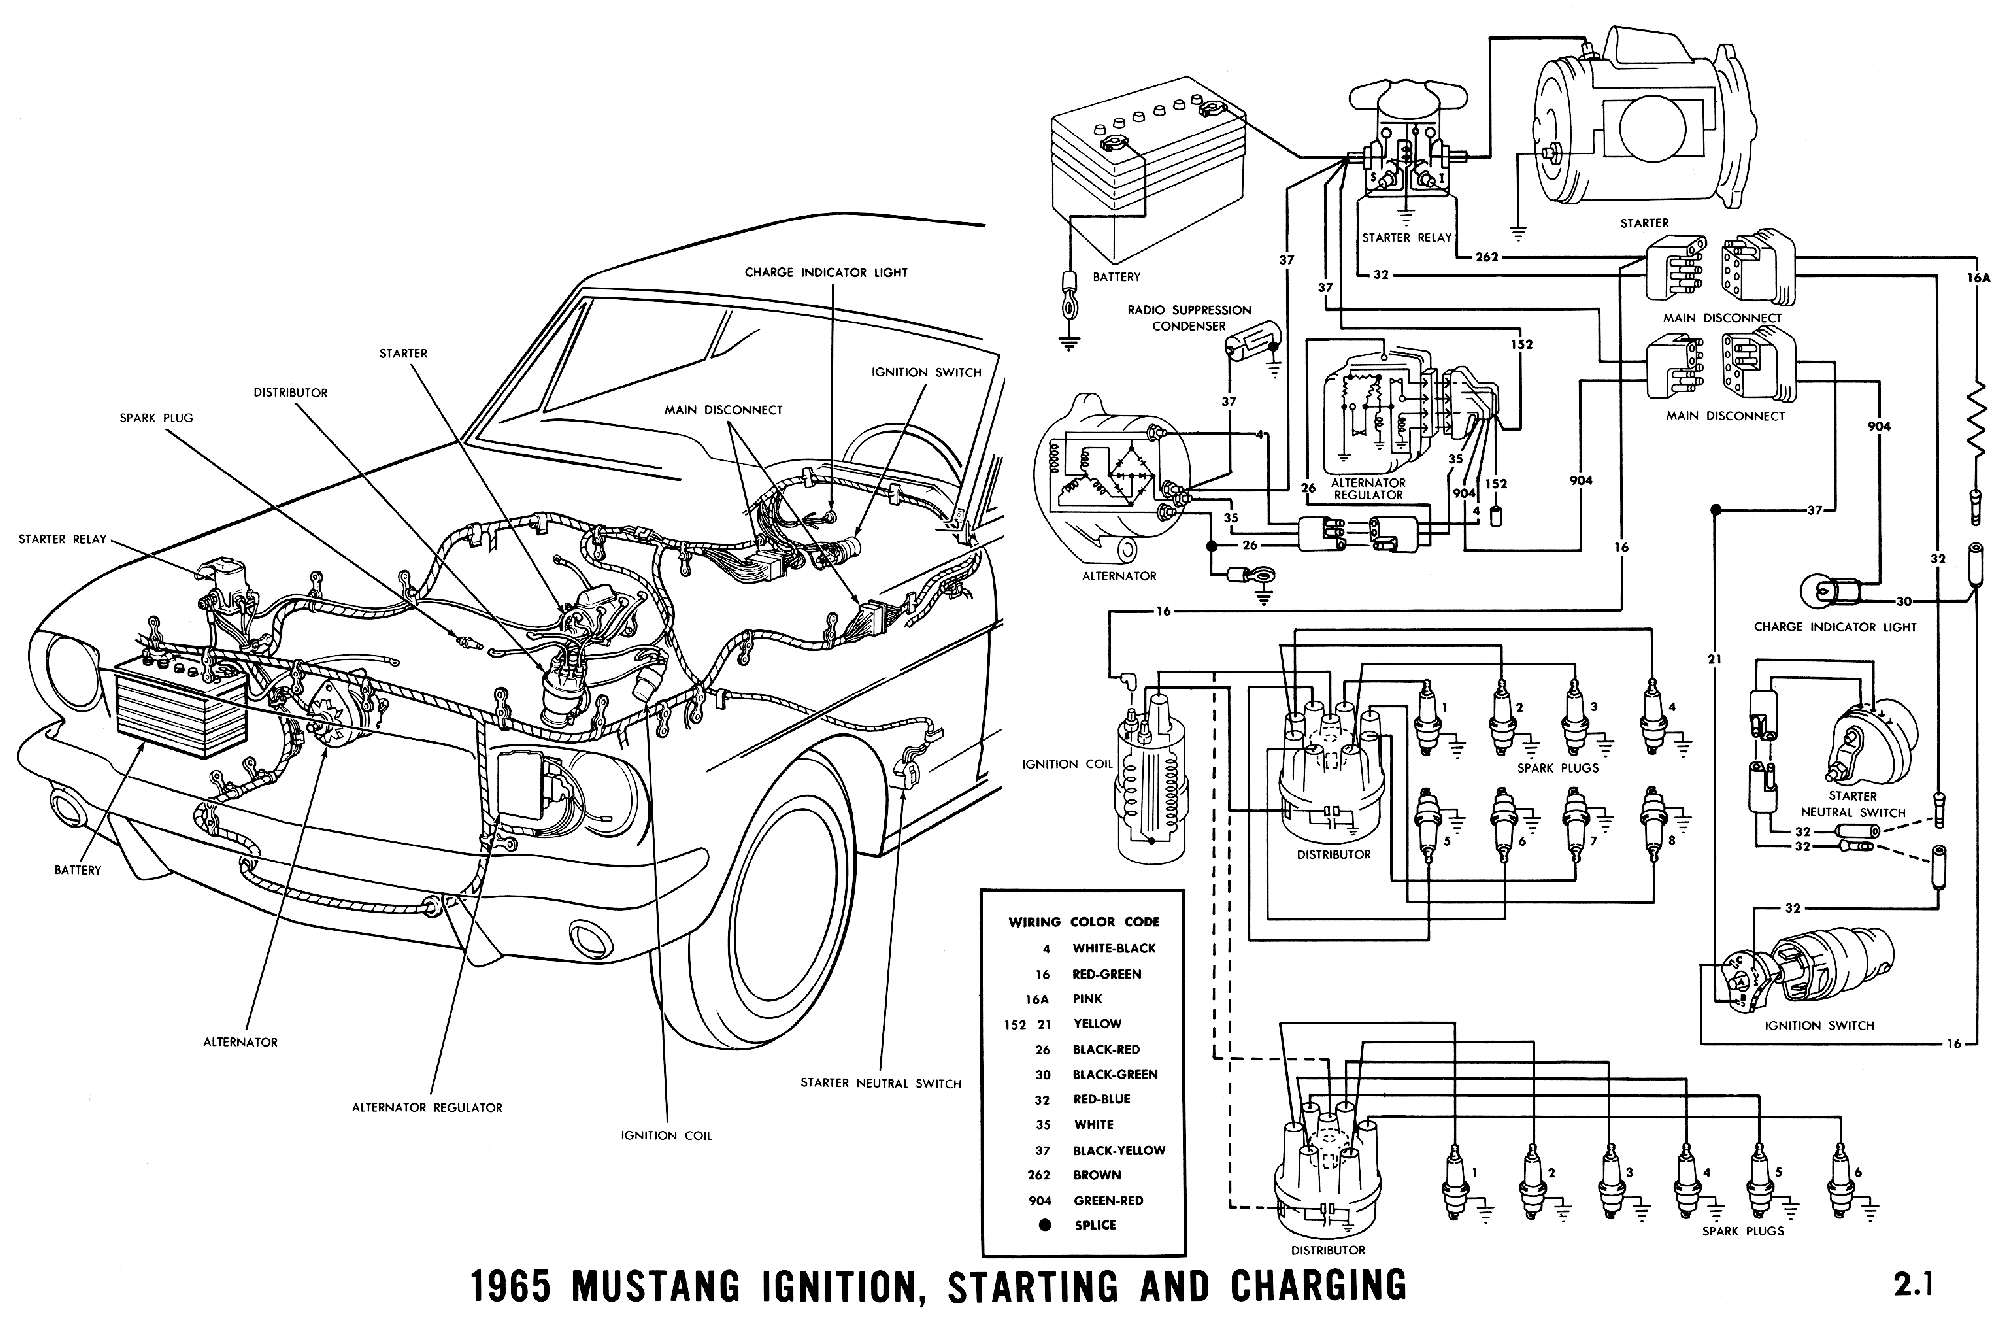 1965 Mustang Wiring Diagrams Average Joe Restoration 57 Chevy Wiper Motor Diagram Charging Pictorial And Schematic